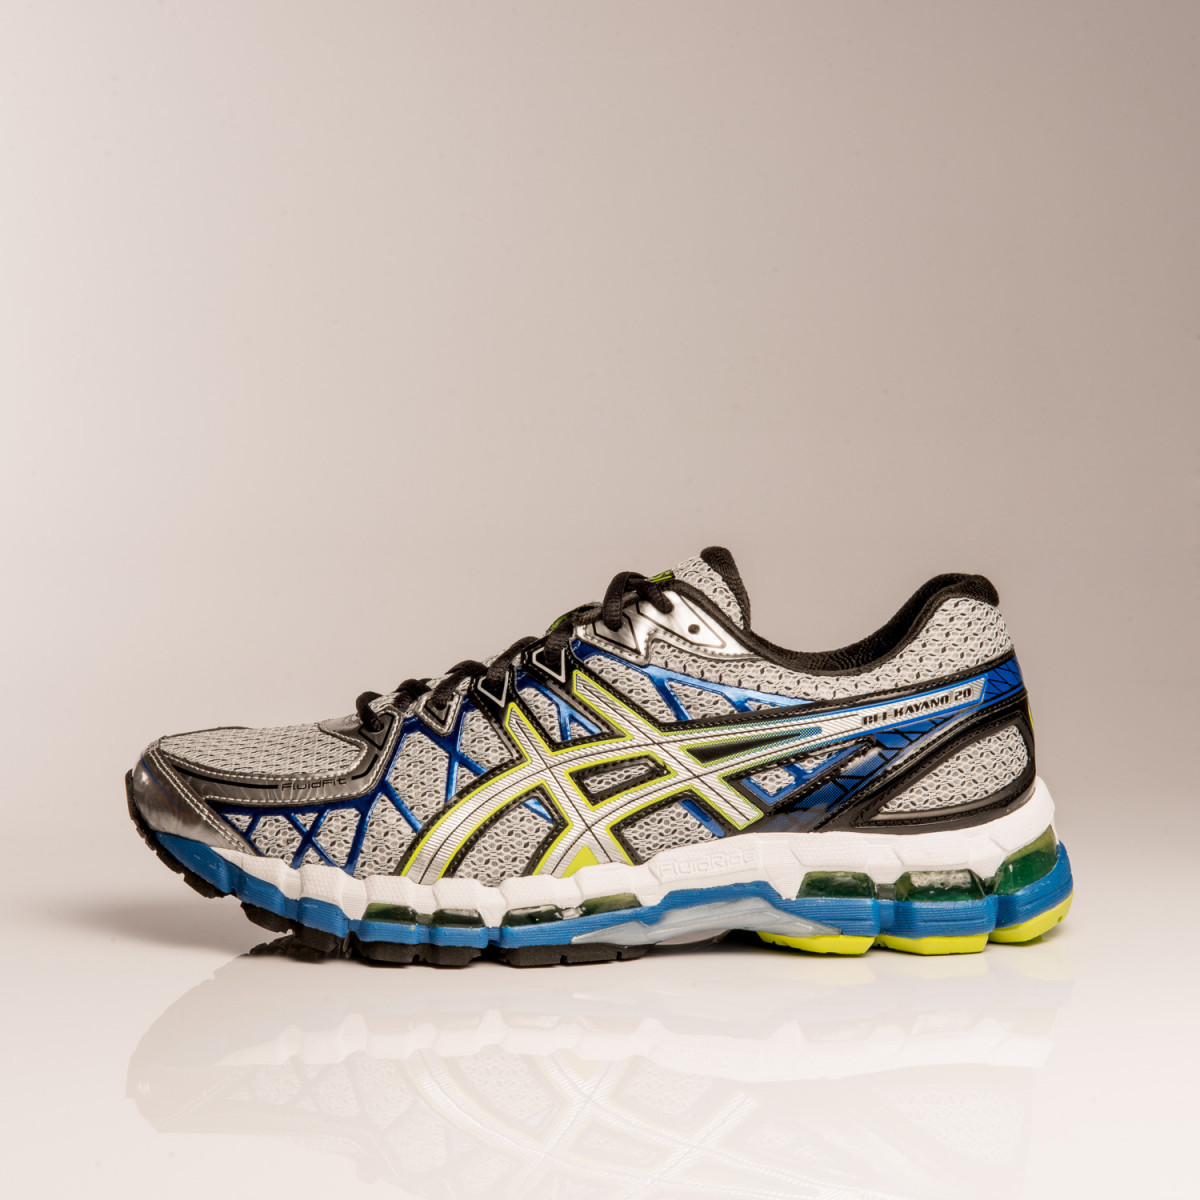 ZAPATILLAS ASICS GEL KAYANO 20  M